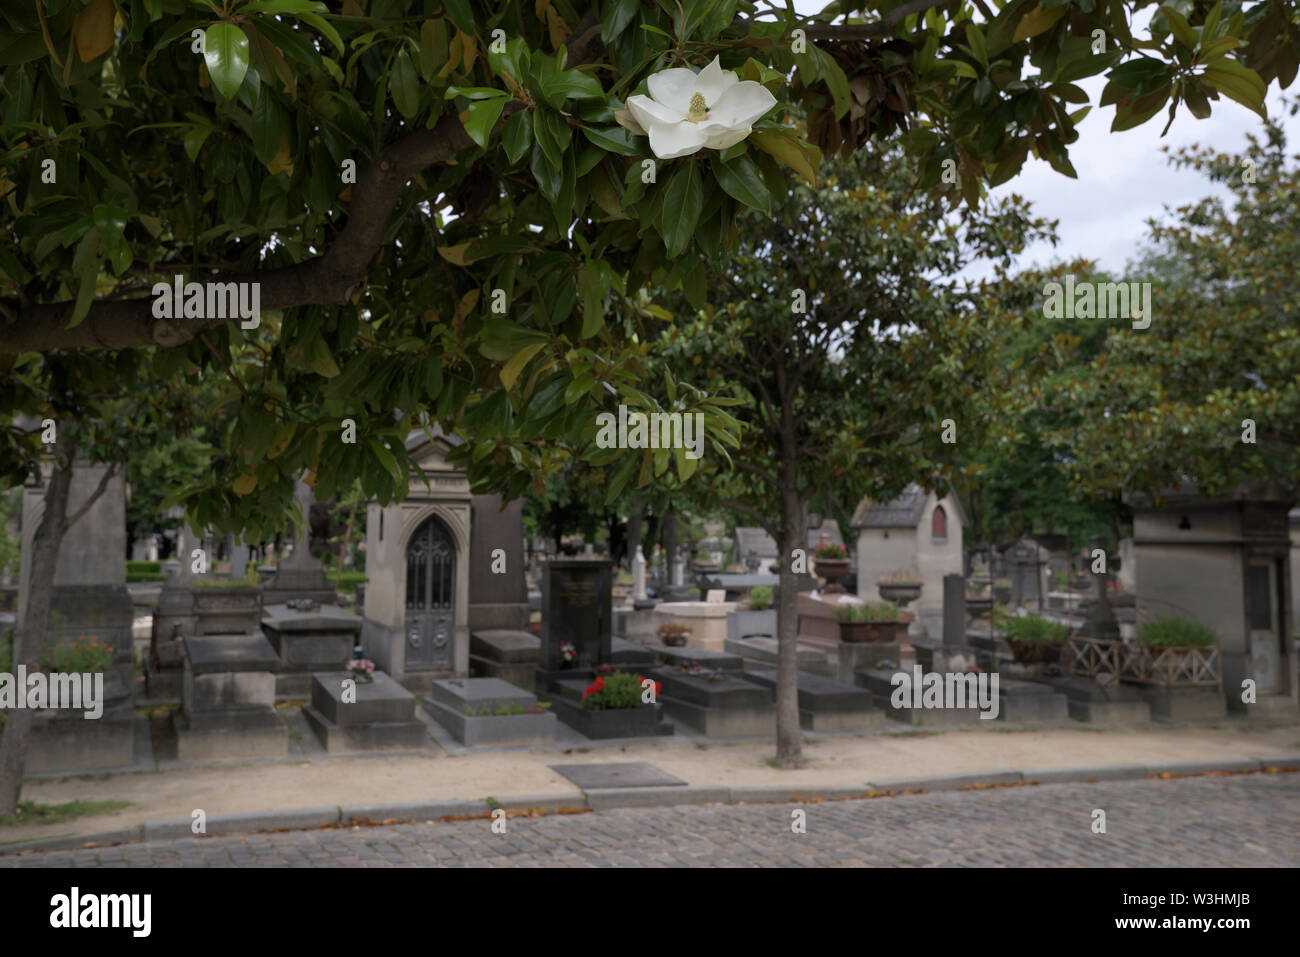 white blossom at the Pere Lachaise Cemetery, Paris, France - Stock Image